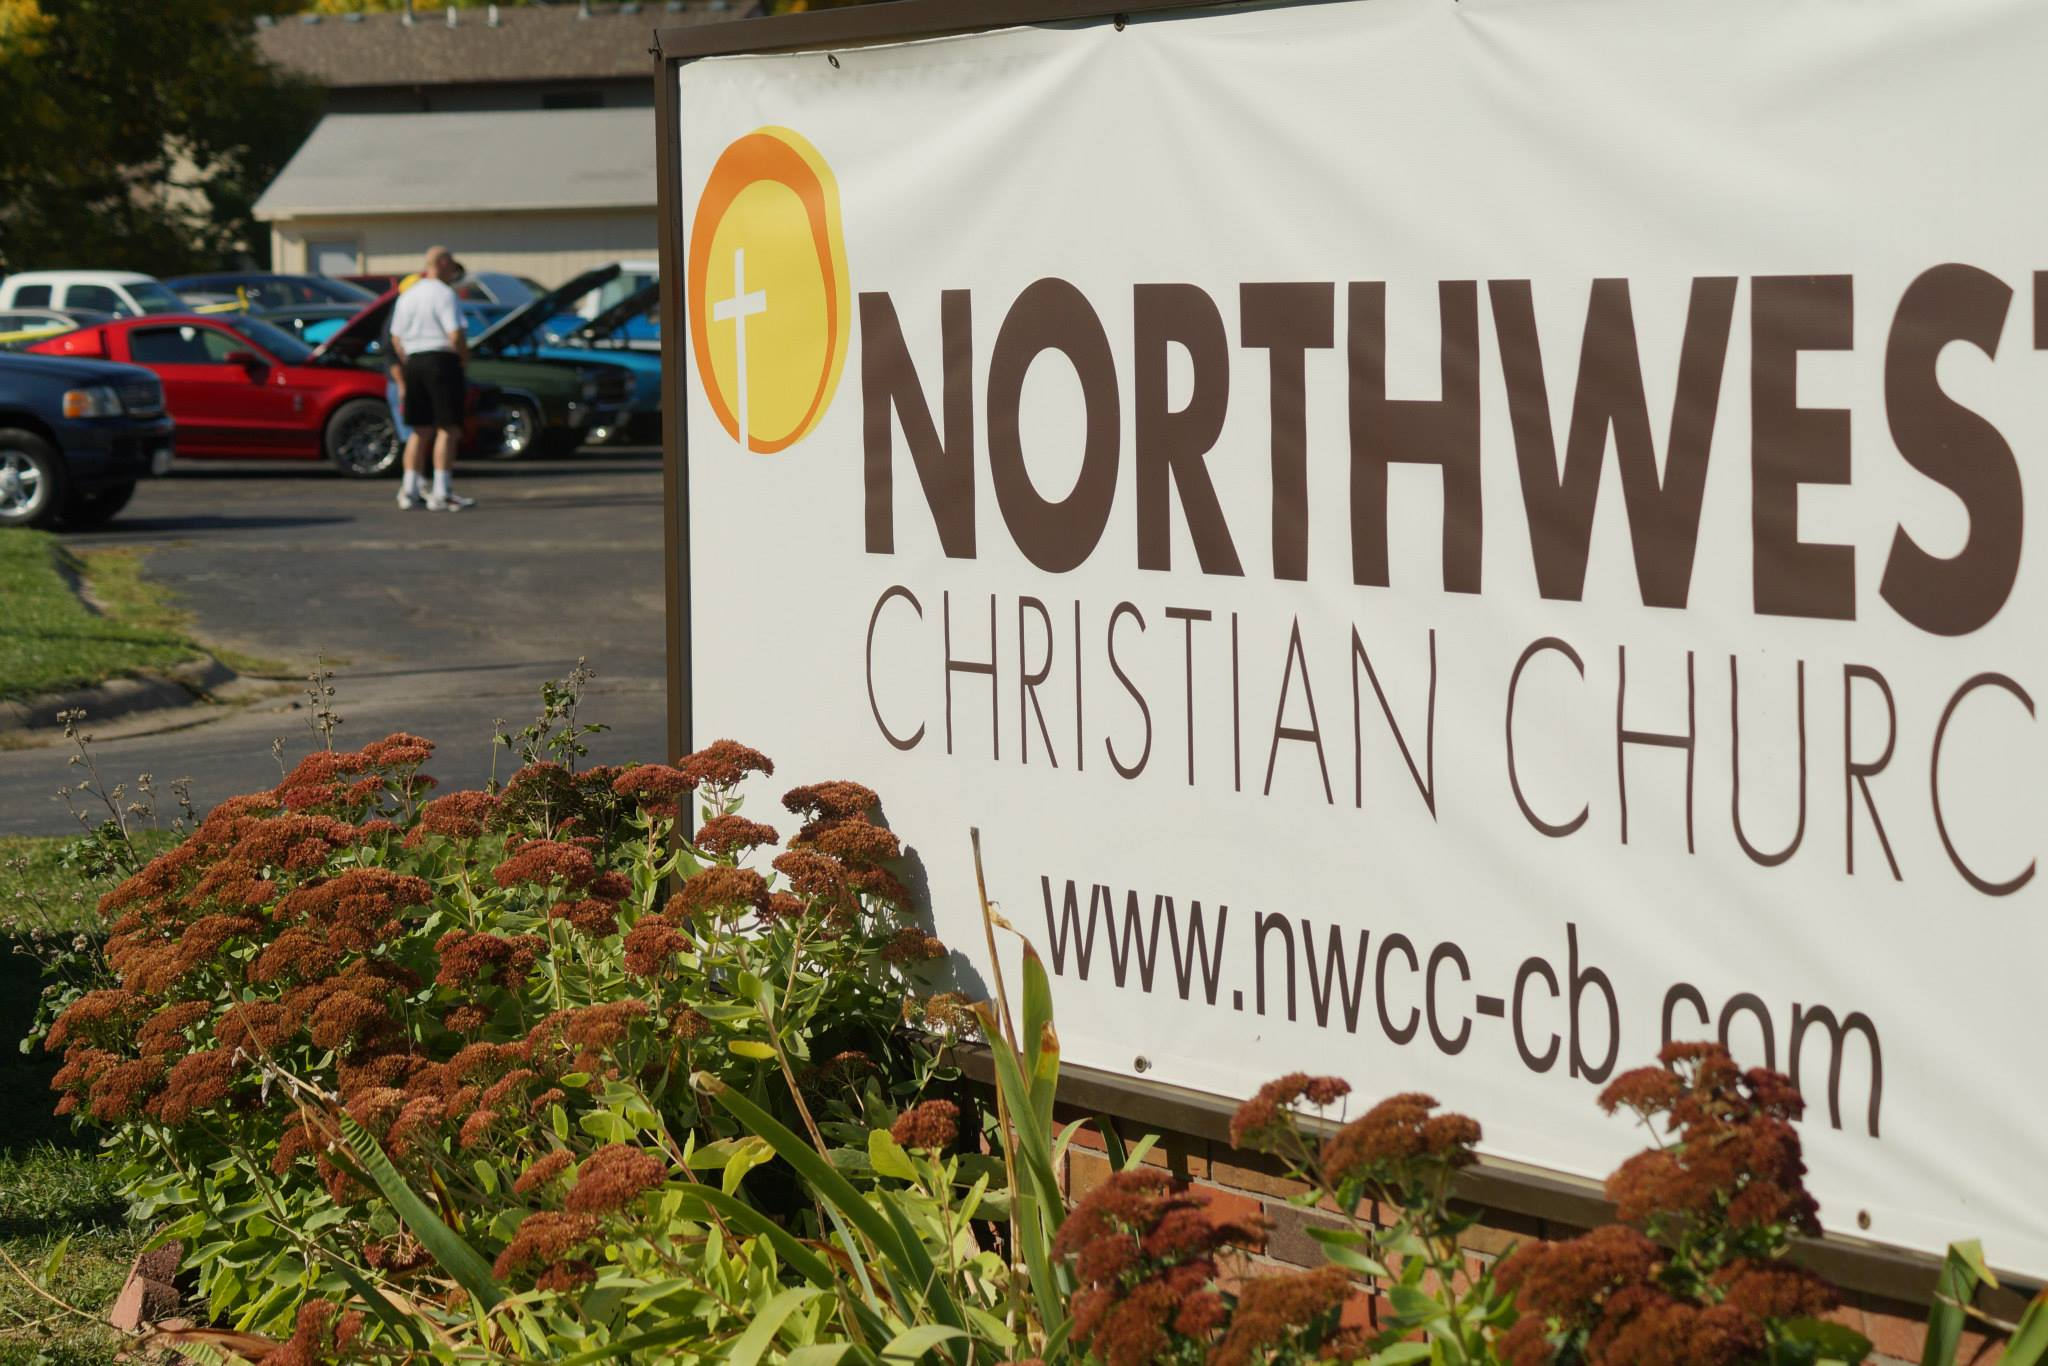 Northwest Christian Church